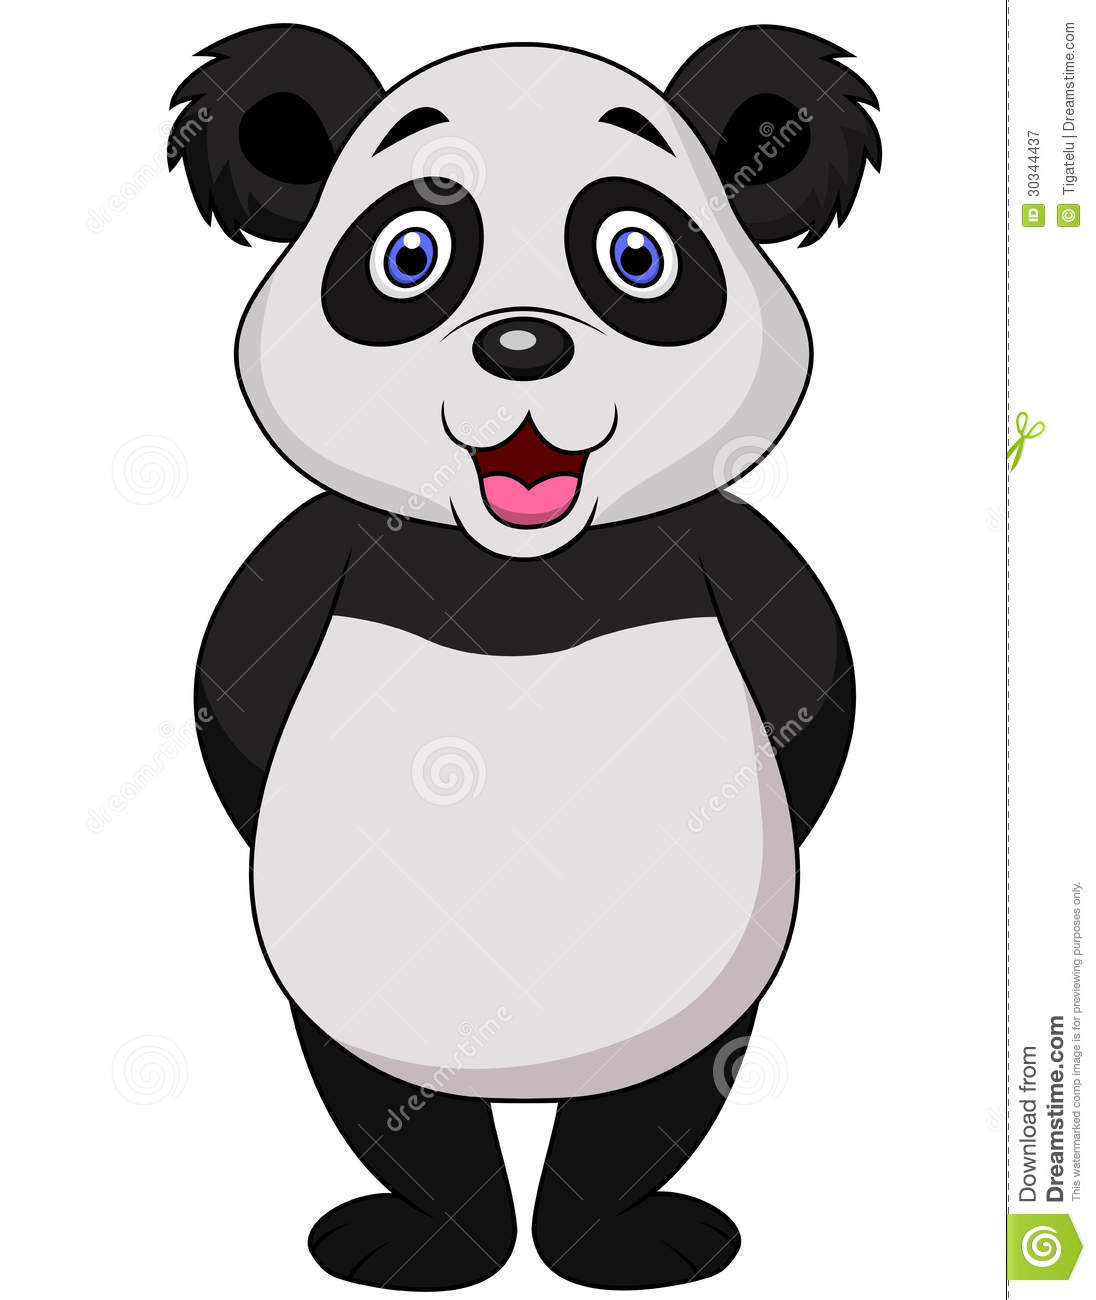 Cute Panda Cartoon Royalty Free Stock Photography - Image: 30344437